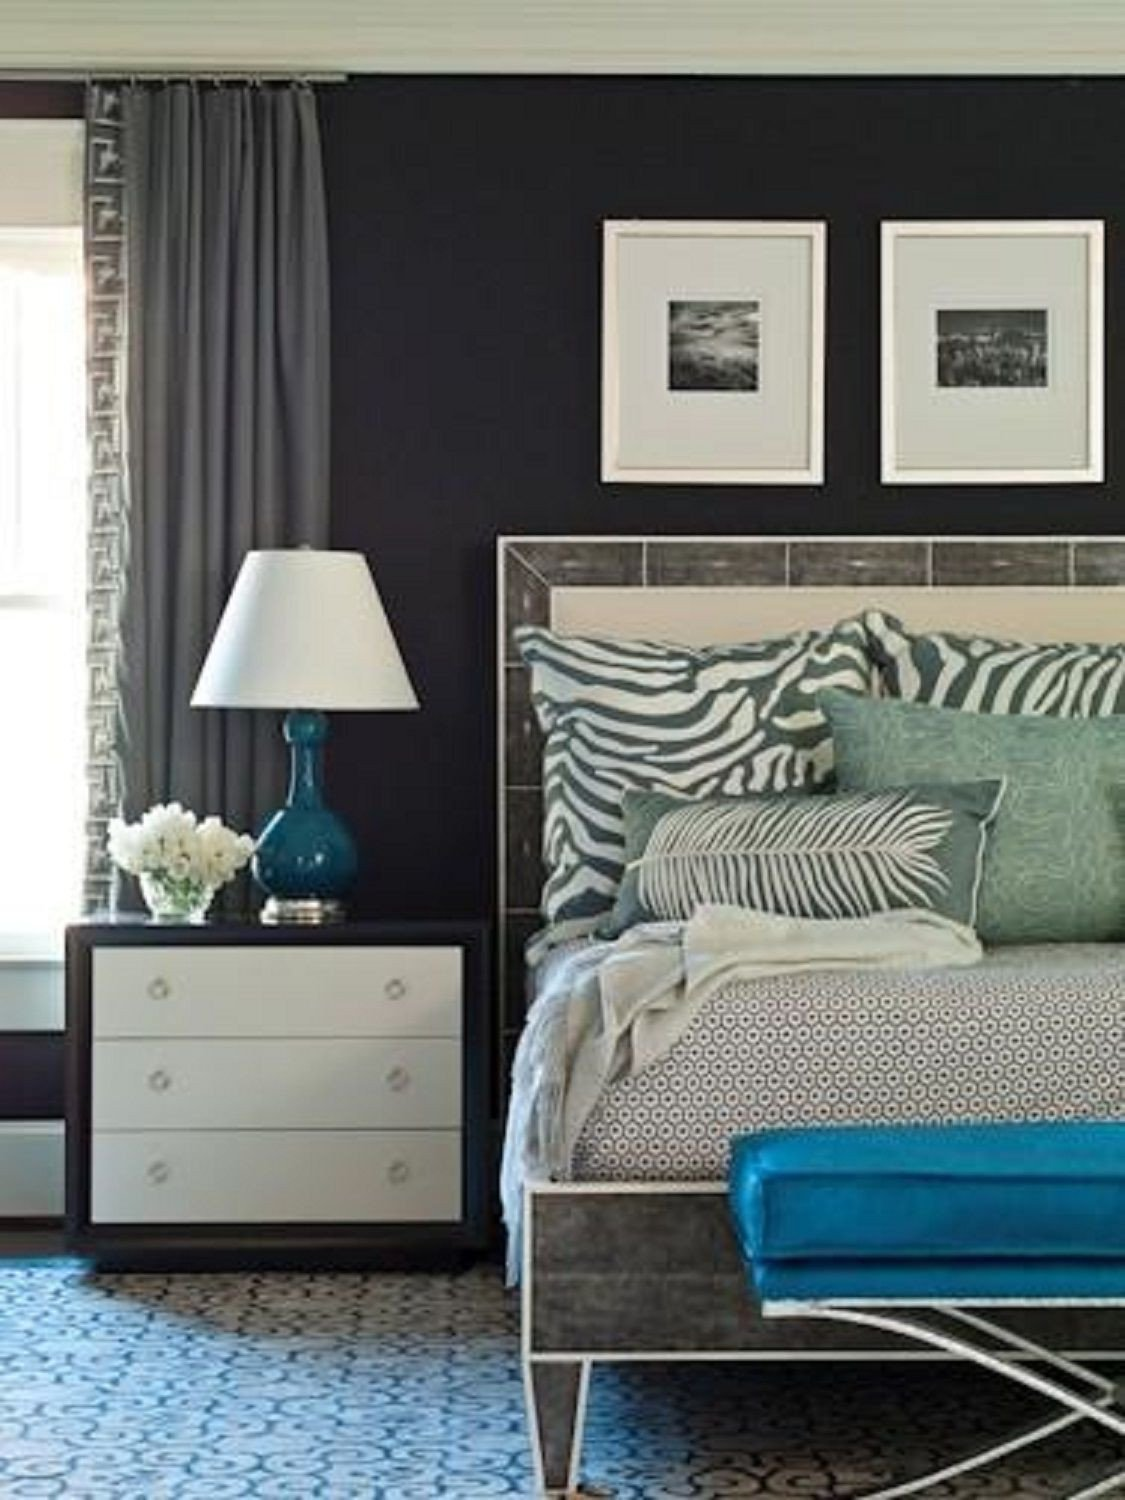 Tiffany Blue Bedroom Ideas Unique 25 Stunning Blue Bedroom Ideas